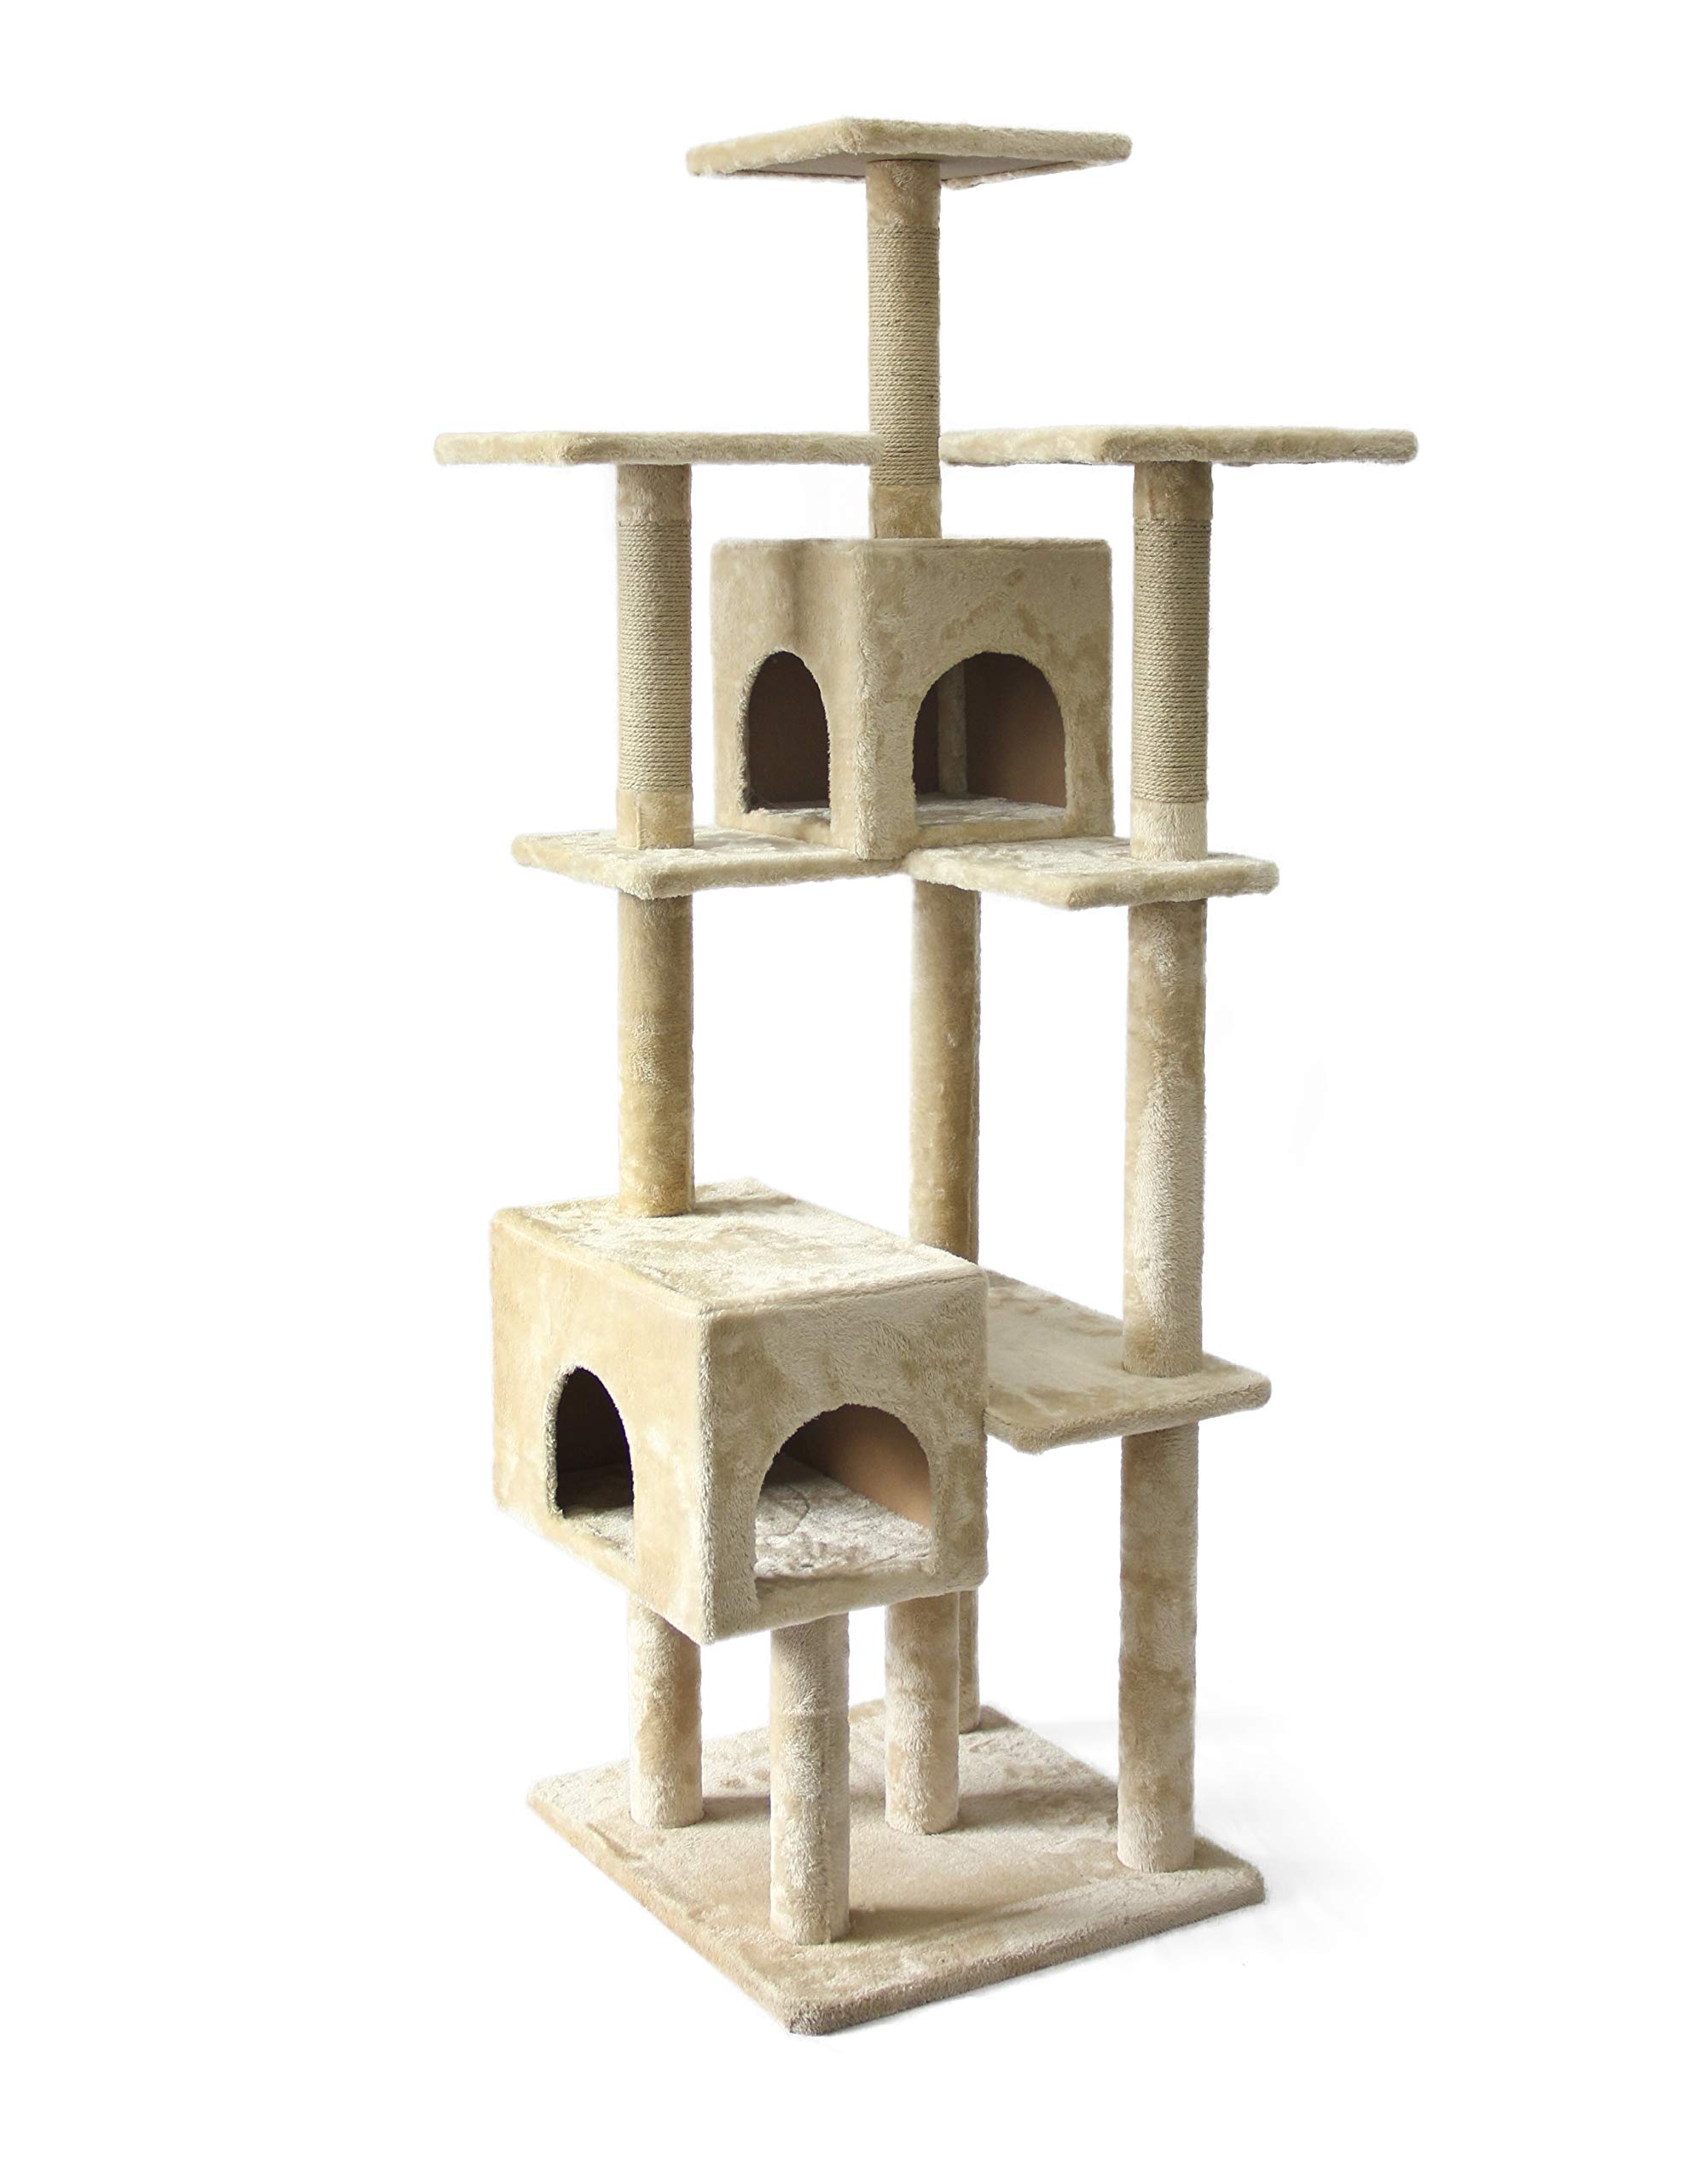 AmazonBasics Large Cat Condo Tree Tower with Dual Caves And Scratching Post - 25 x 29 x 70 Inches, Beige by AmazonBasics